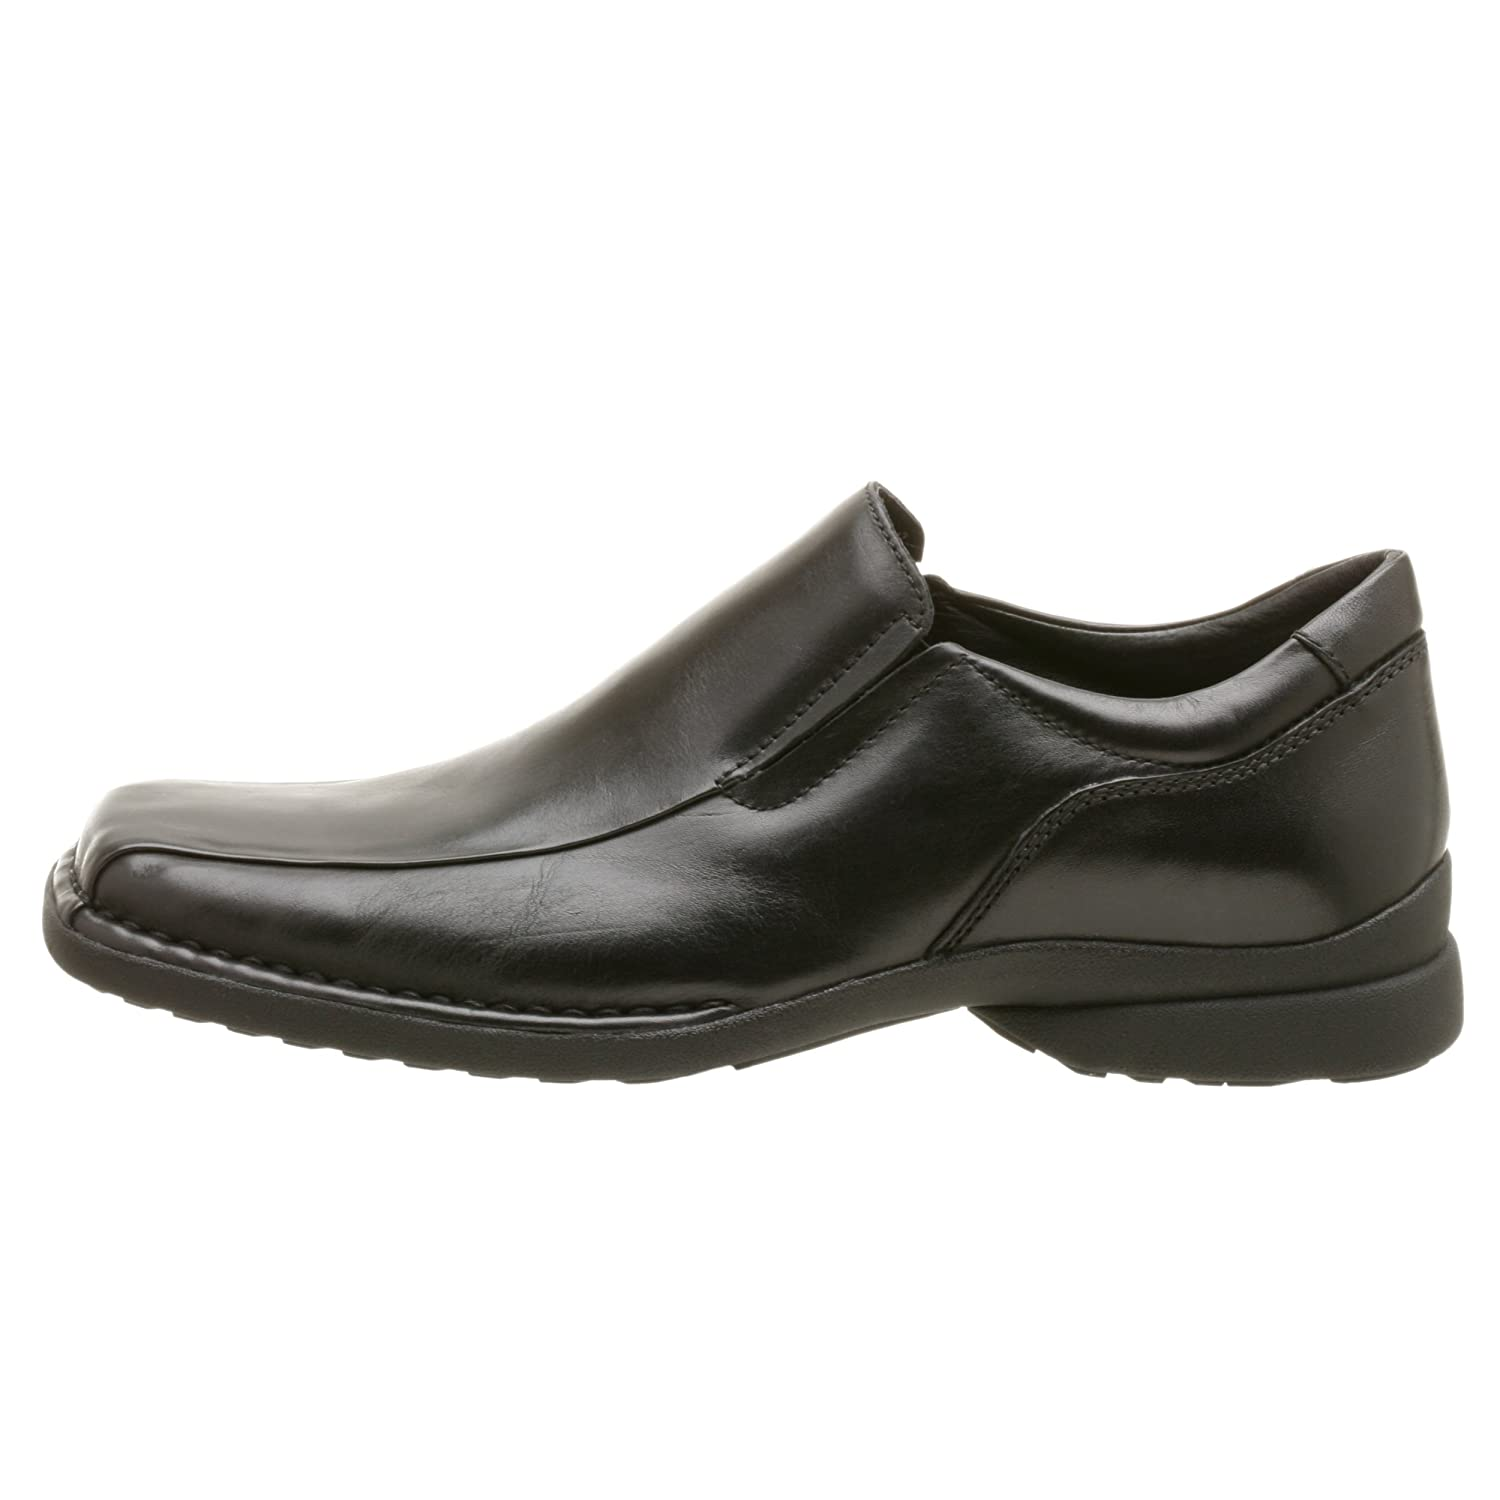 Kenneth Cole Reaction Punchual - Mocasines para hombre, color negro, talla 11M M US: Kenneth Cole Reaction: Amazon.es: Zapatos y complementos